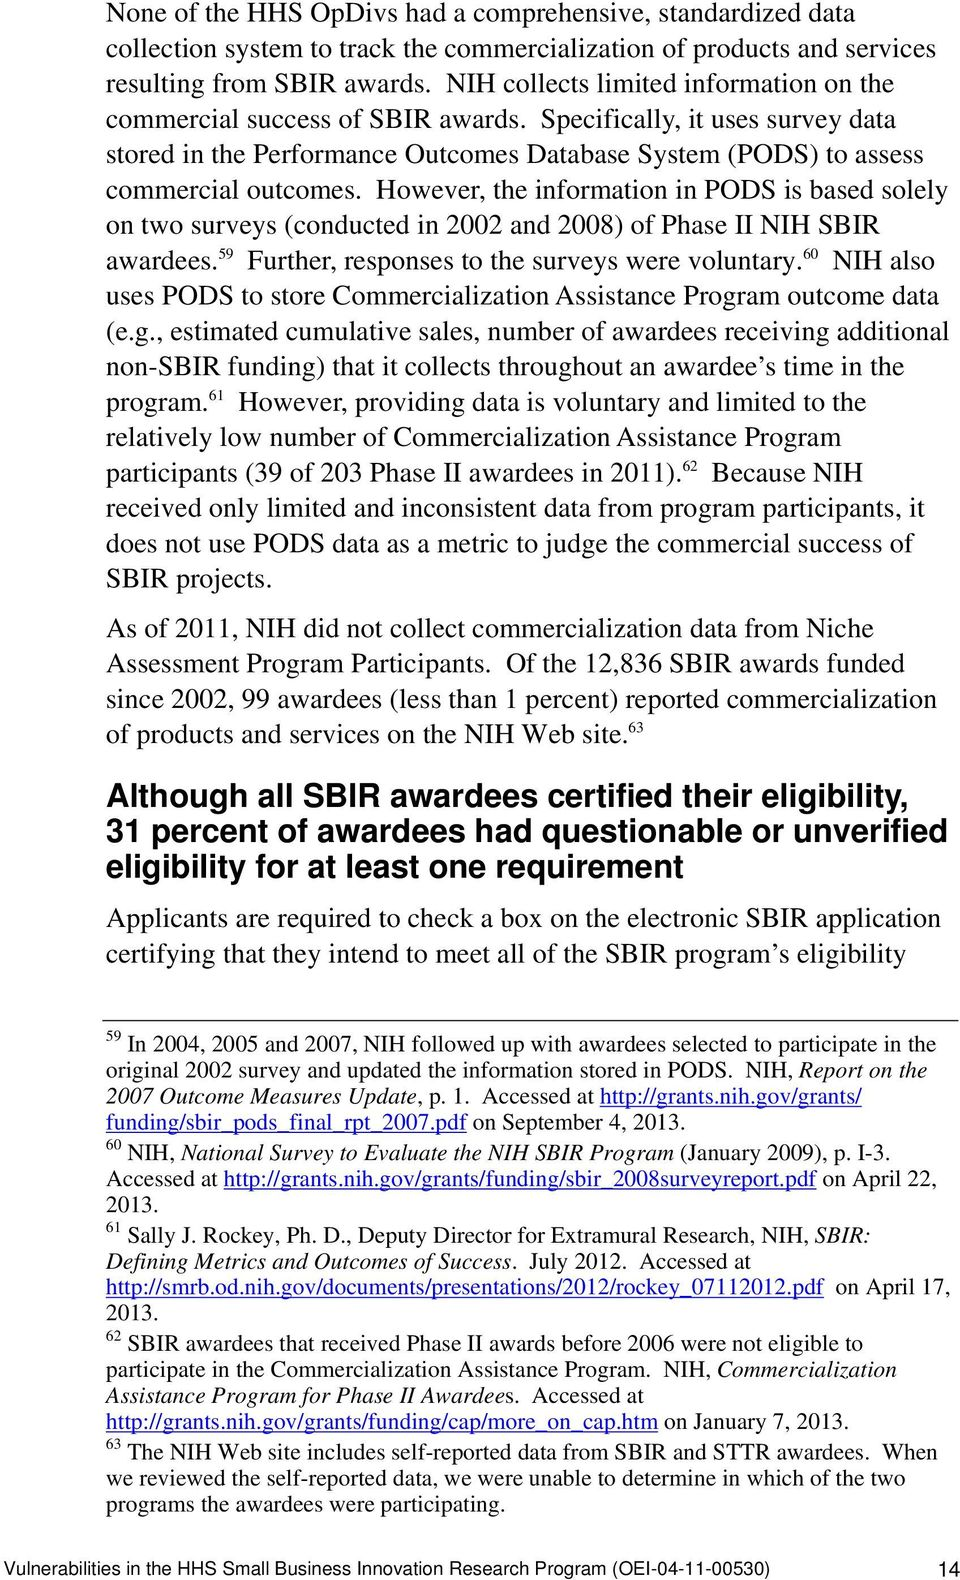 However, the information in PODS is based solely on two surveys (conducted in 2002 and 2008) of Phase II NIH SBIR awardees. 59 Further, responses to the surveys were voluntary.